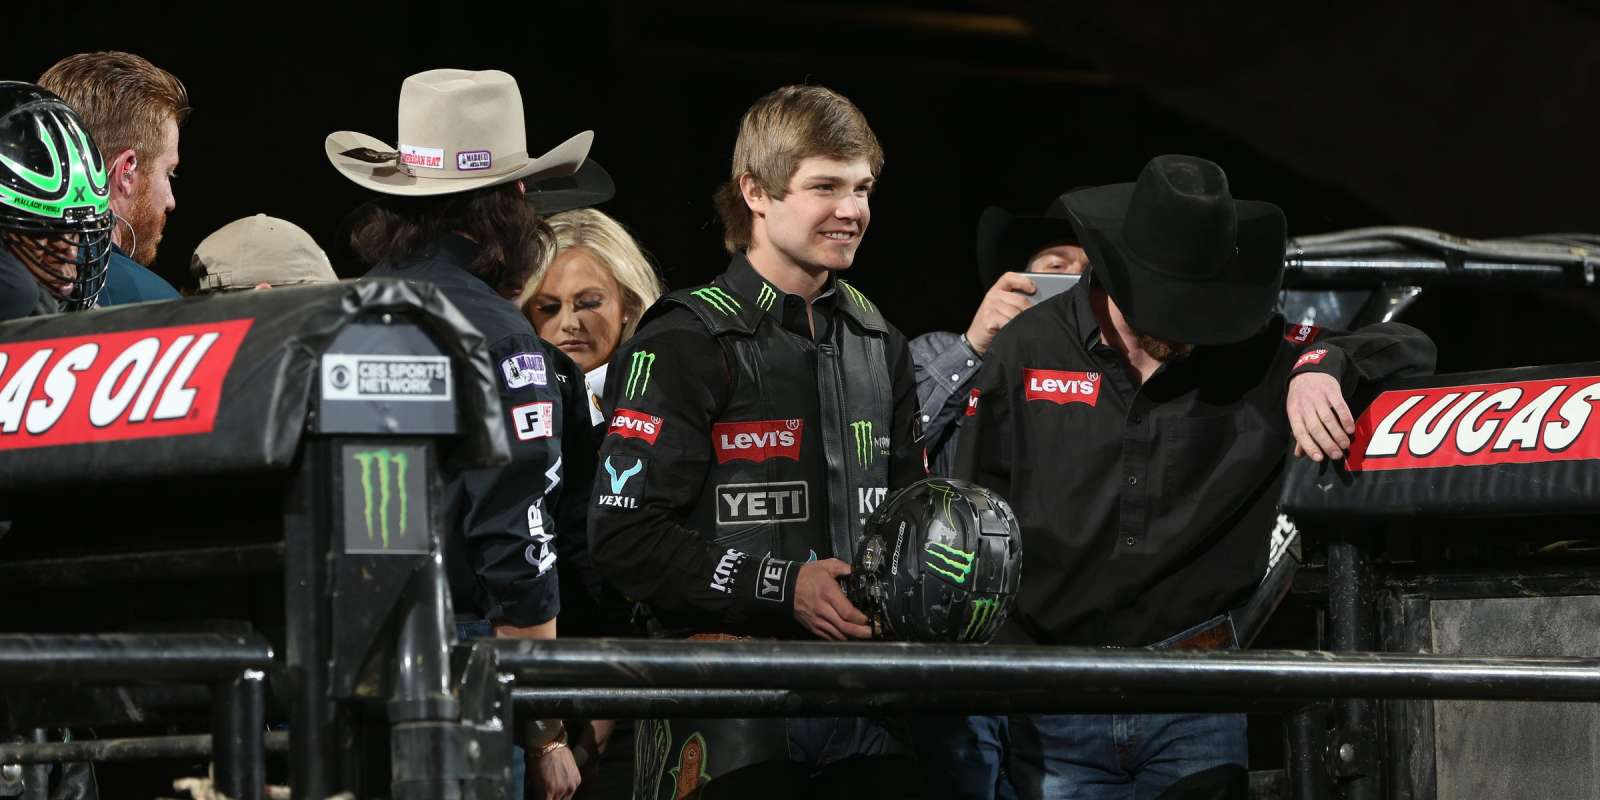 Derek Kolbaba during the first round of the Billings PBR 25th Anniversary Unleash the Beast